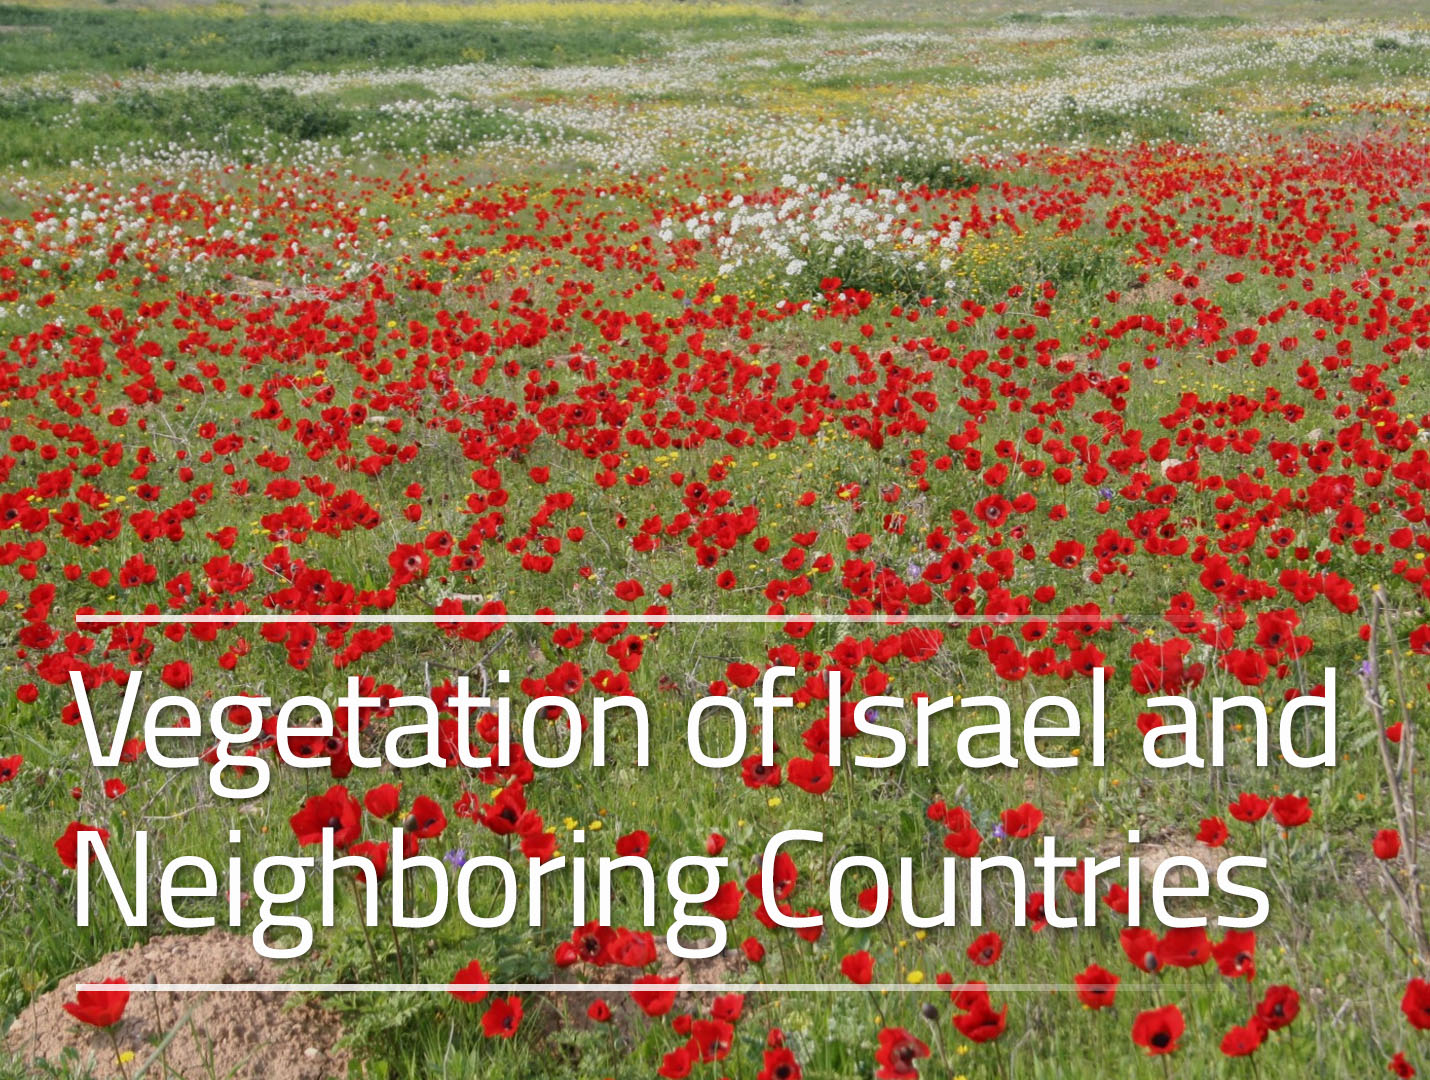 Vegetation of Israel and Neighboring Countries